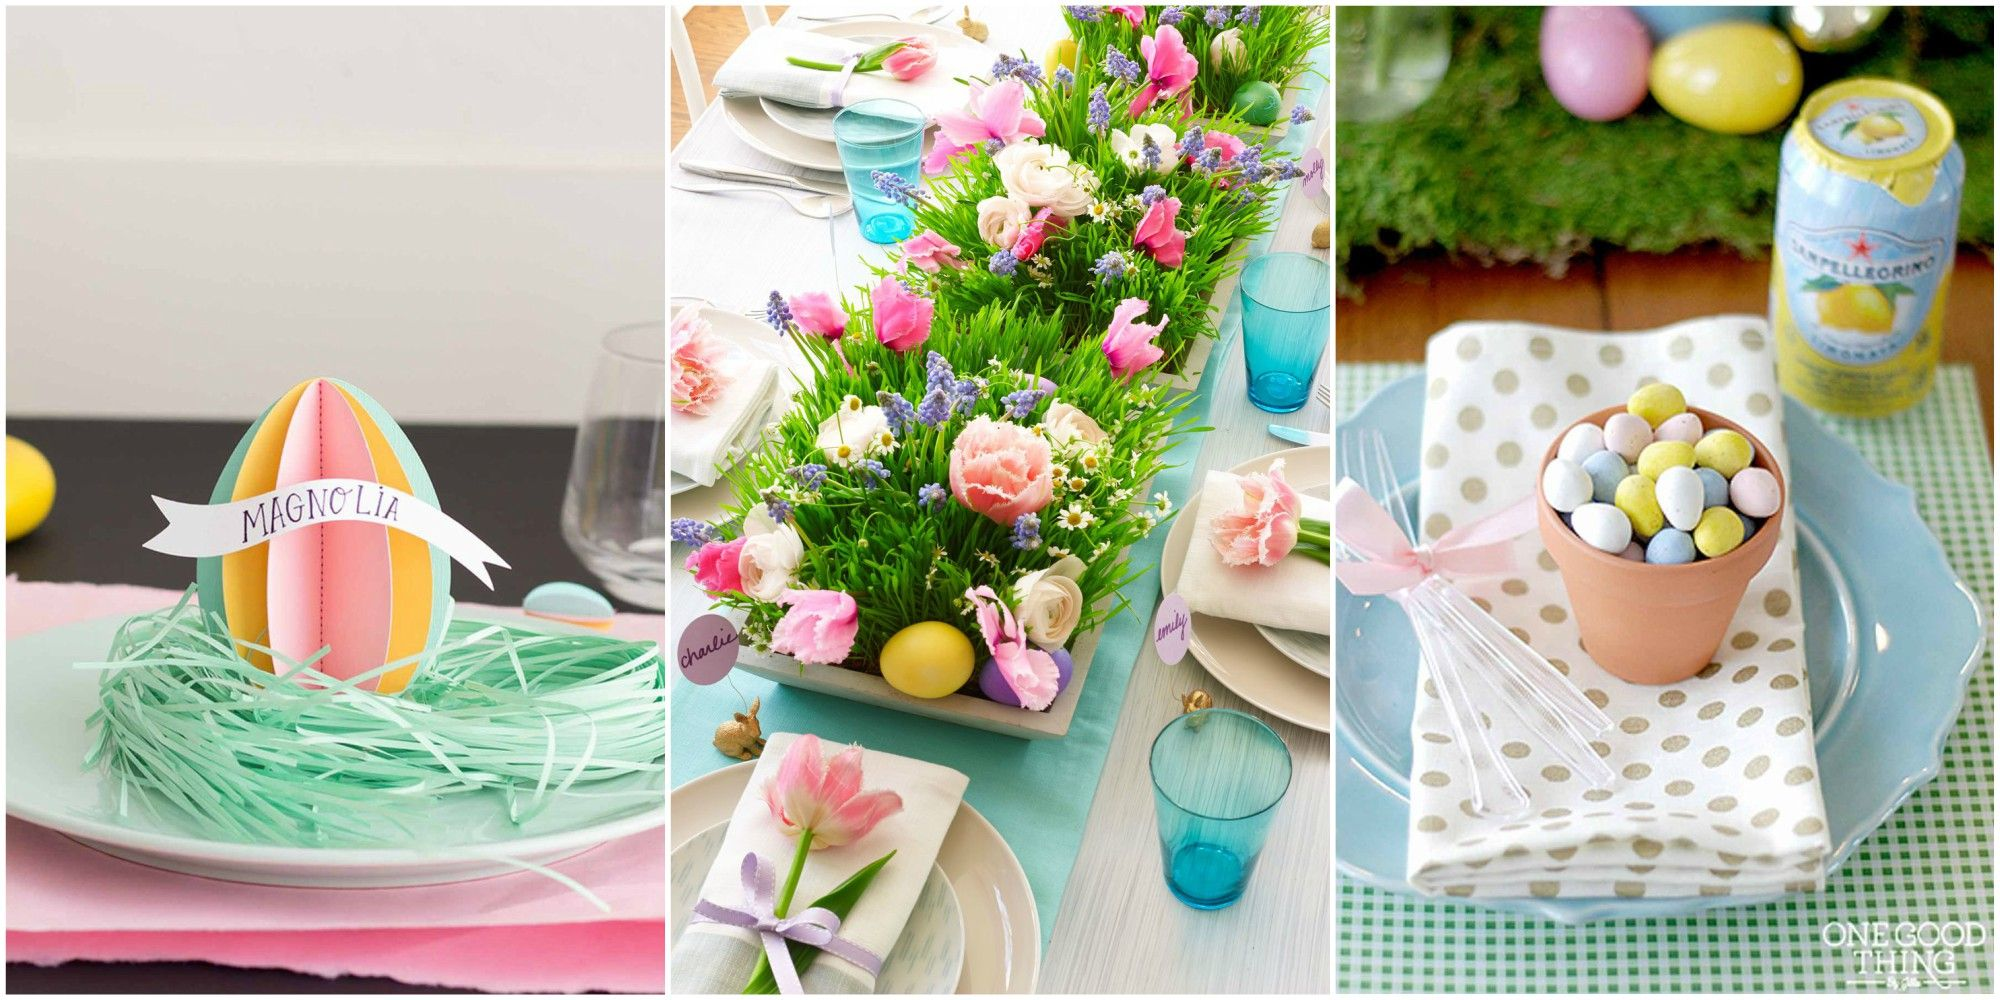 24 Easter Table Decorations   Table Decor Ideas for Easter Brunch easter brunch table